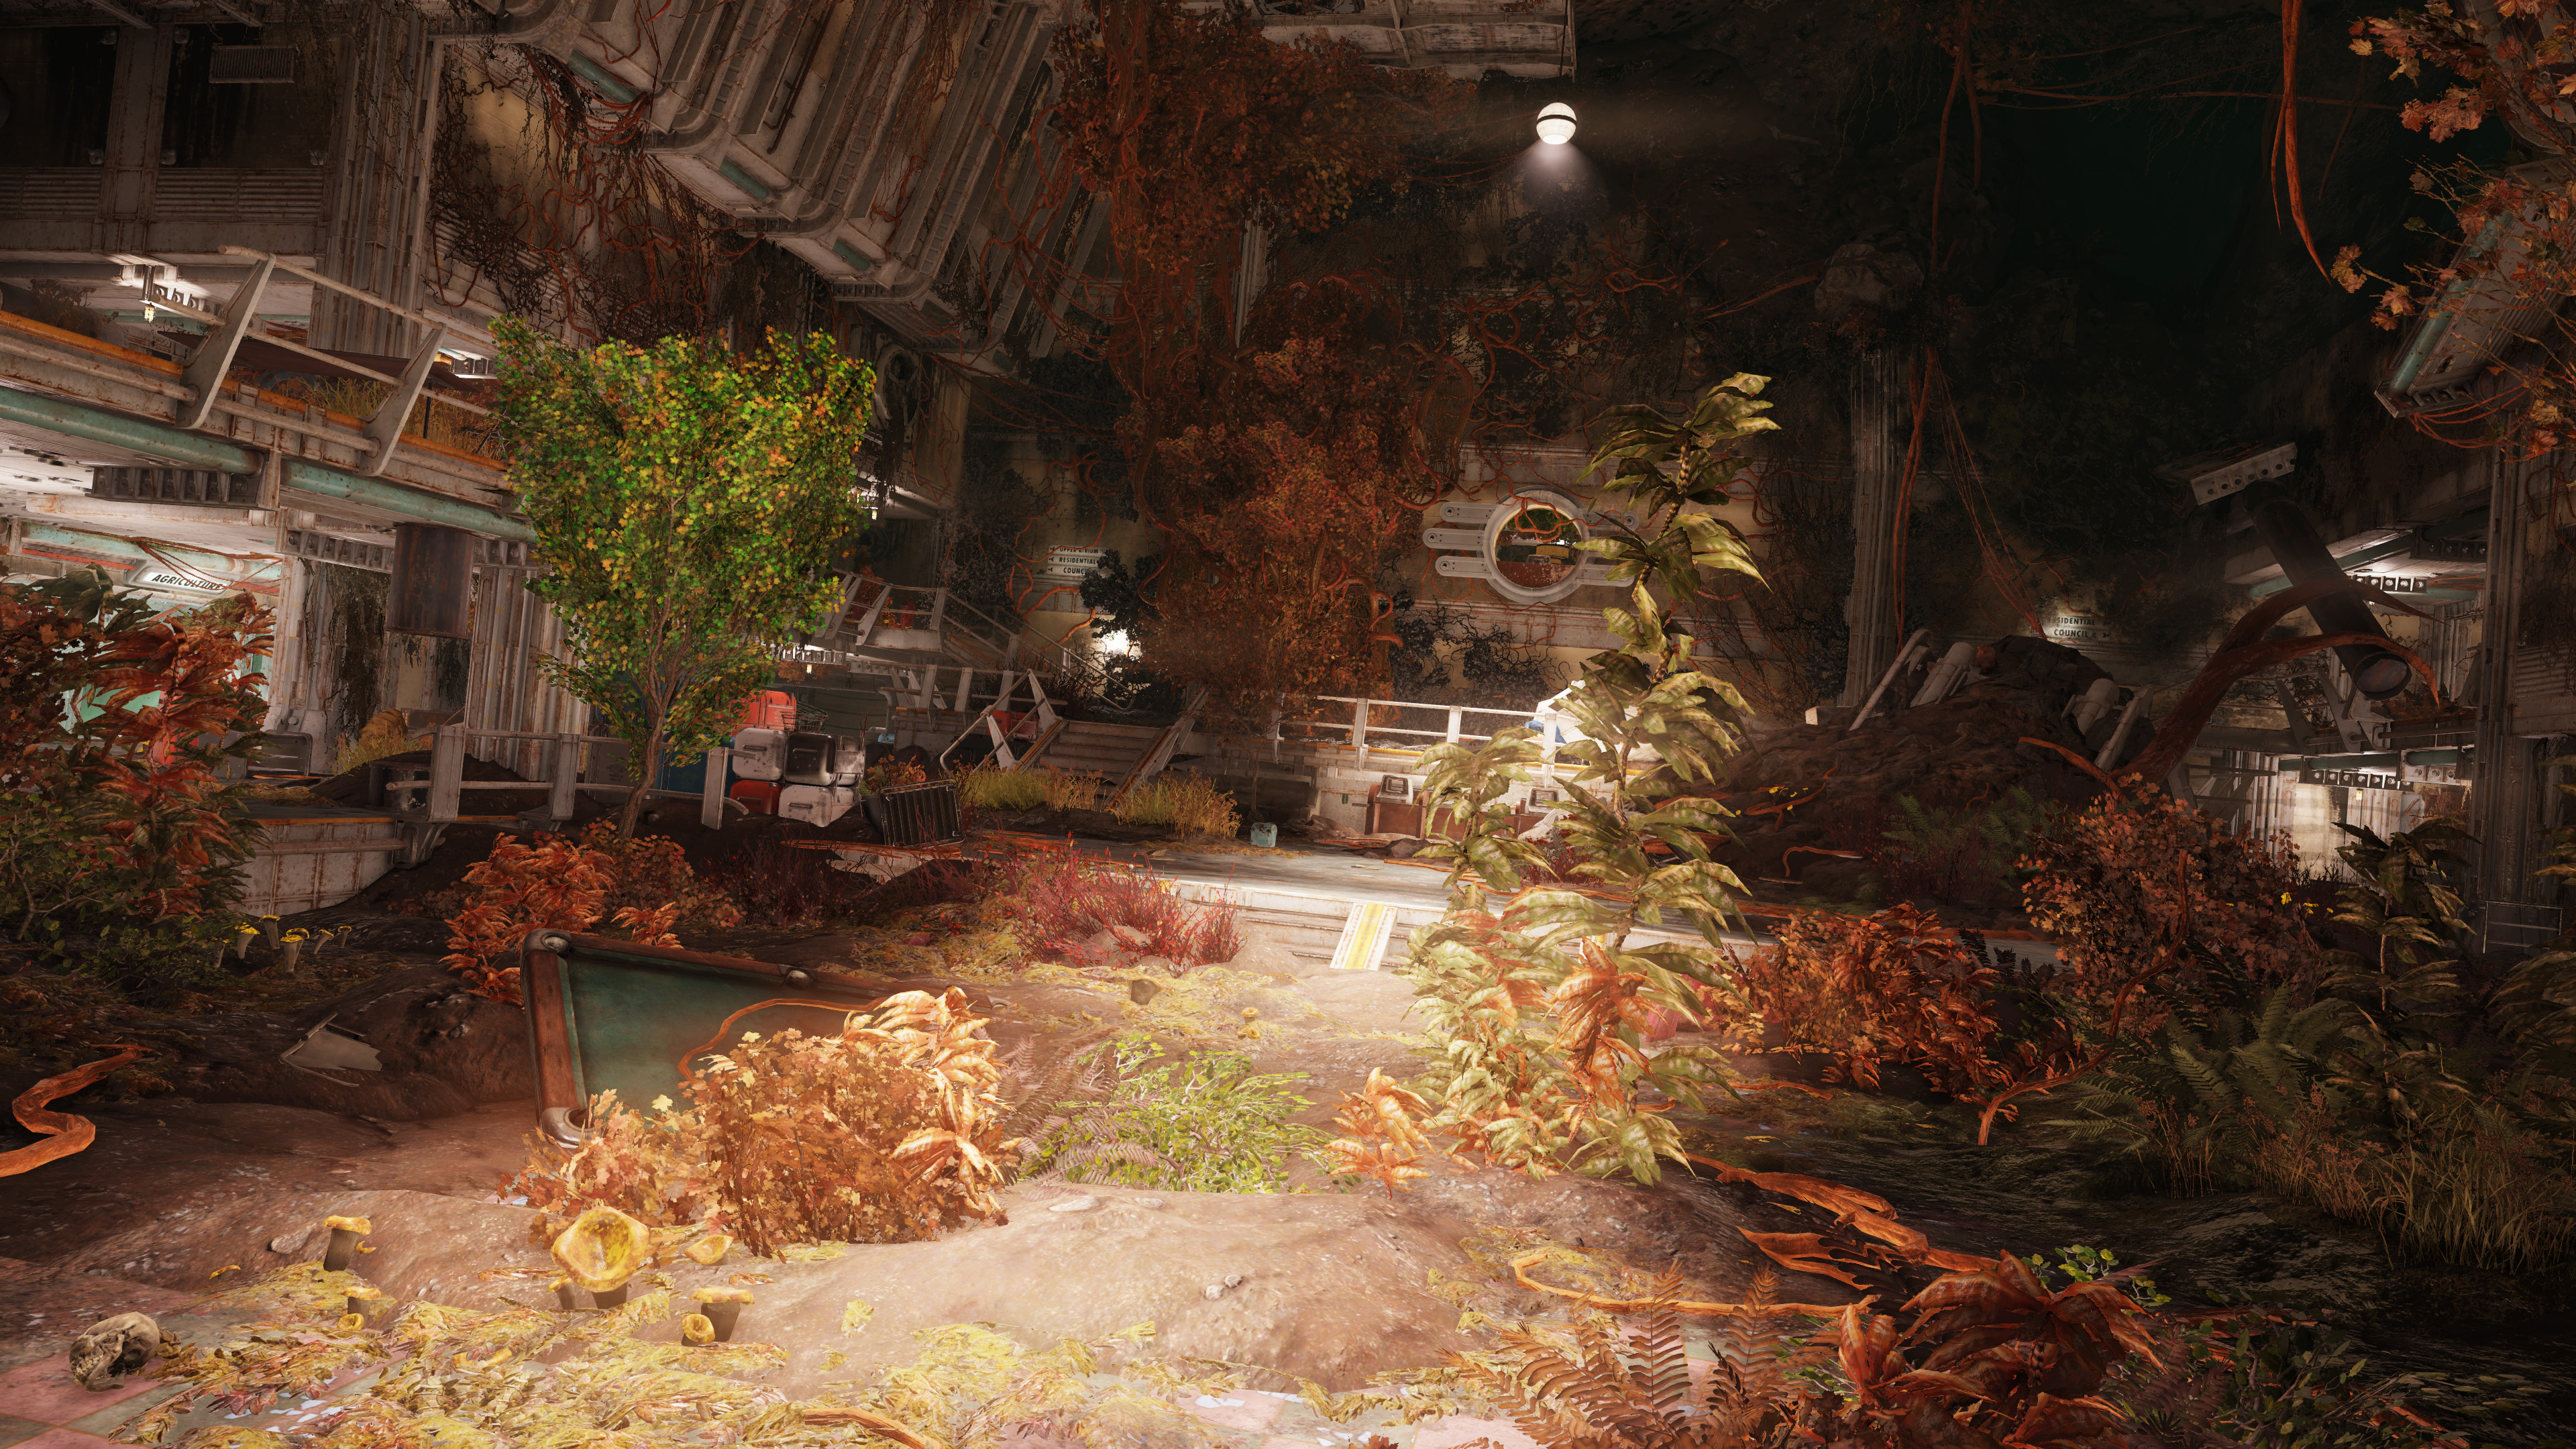 Fallout 76's first multiplayer raid, Vault 94, is full of horrible plants